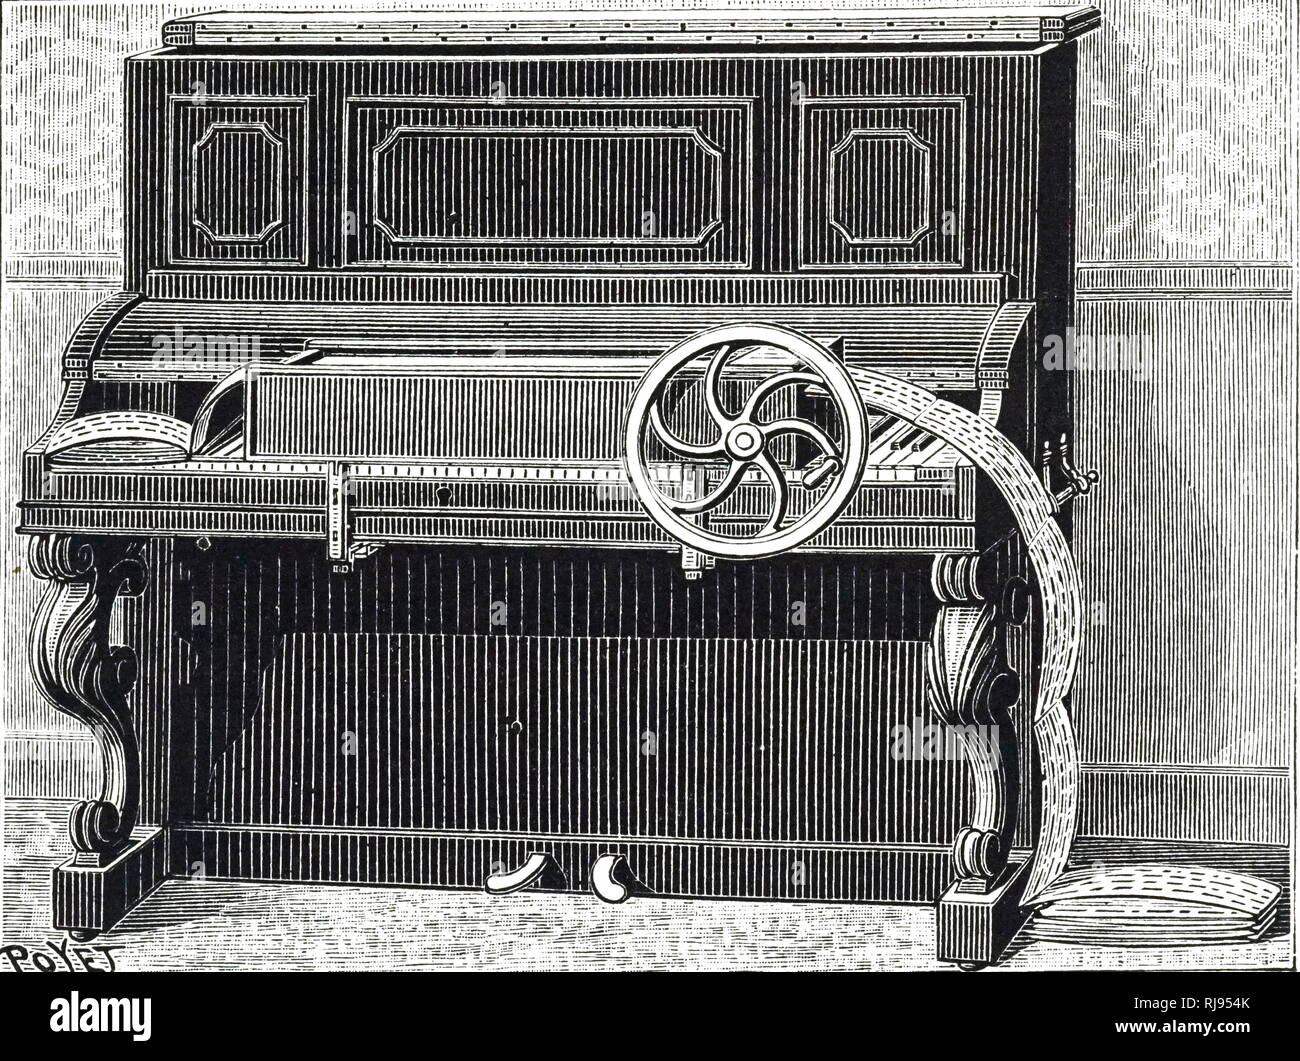 An engraving depicting a Melotrope - an early form of a player-piano by Jules Carpentier which used a punched tape to operate the piano. Jules Carpentier (1851-1921) a French engineer and inventor. Dated 19th century - Stock Image